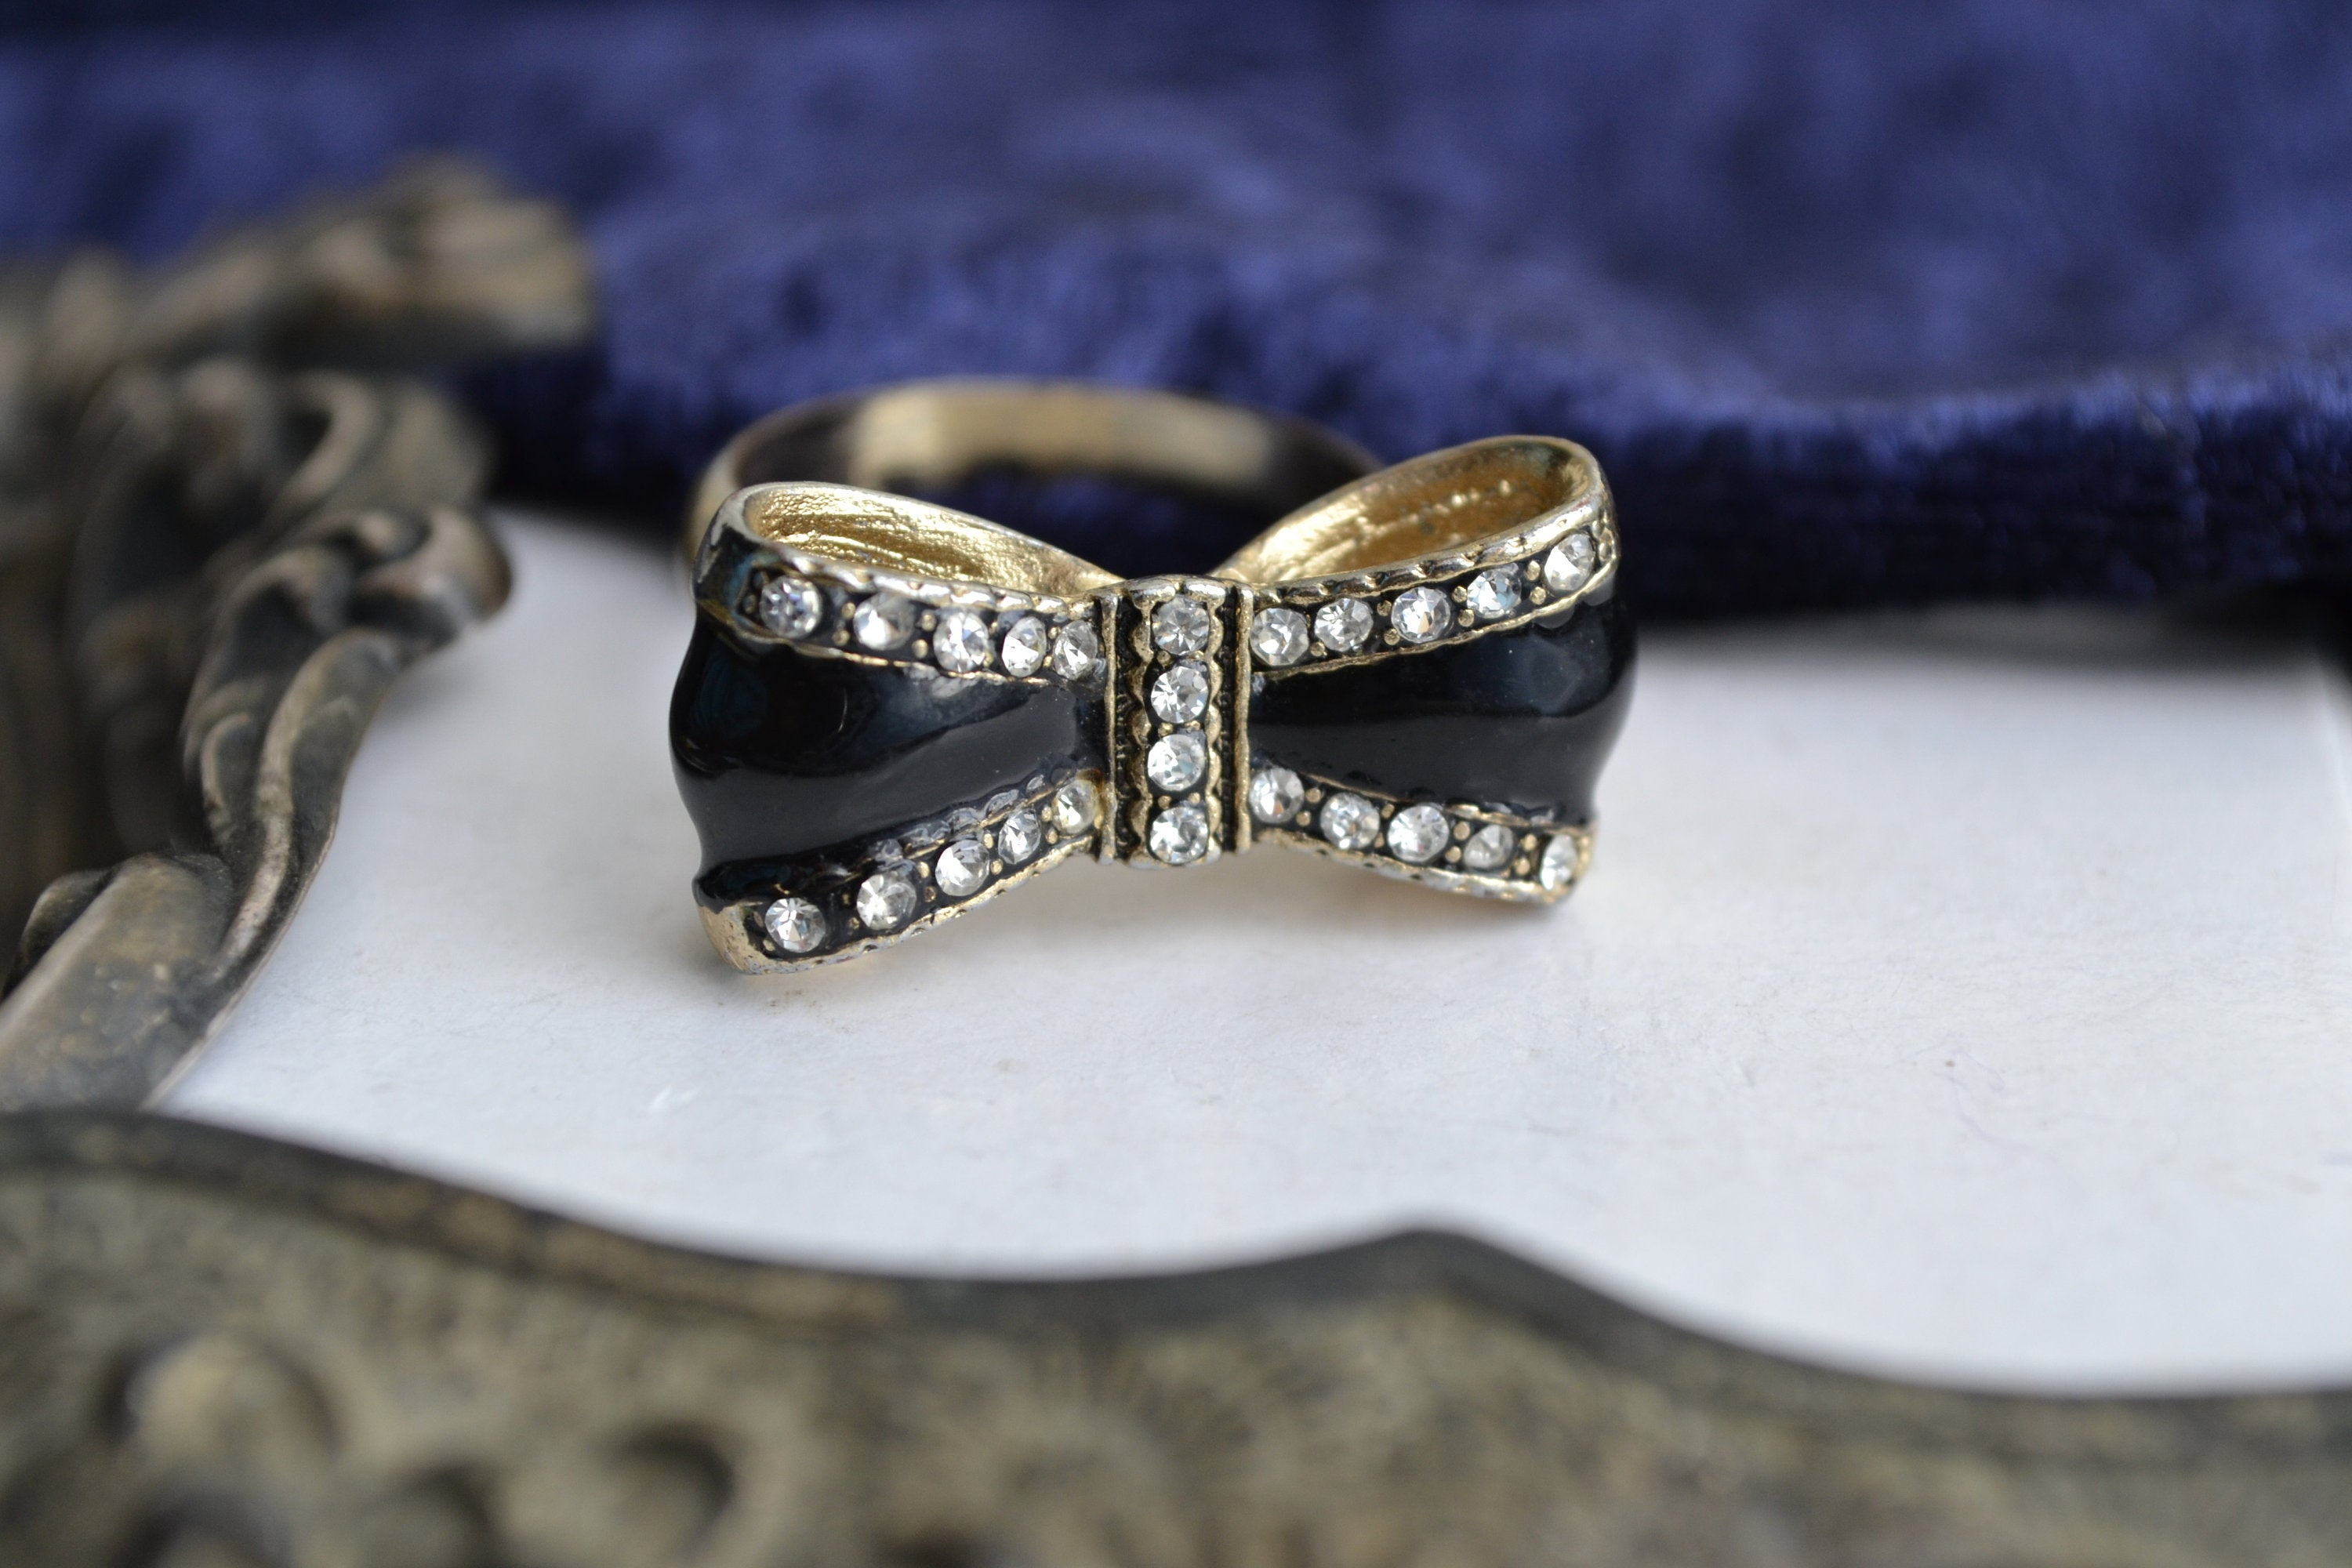 Vintage Black Enamel Bow Ring With Colourless Rhinestones, Ladies Ring, Uk  Size R, 1990S Diamante Pretty Ring With Regard To Recent Classic Bow Rings (Gallery 18 of 25)